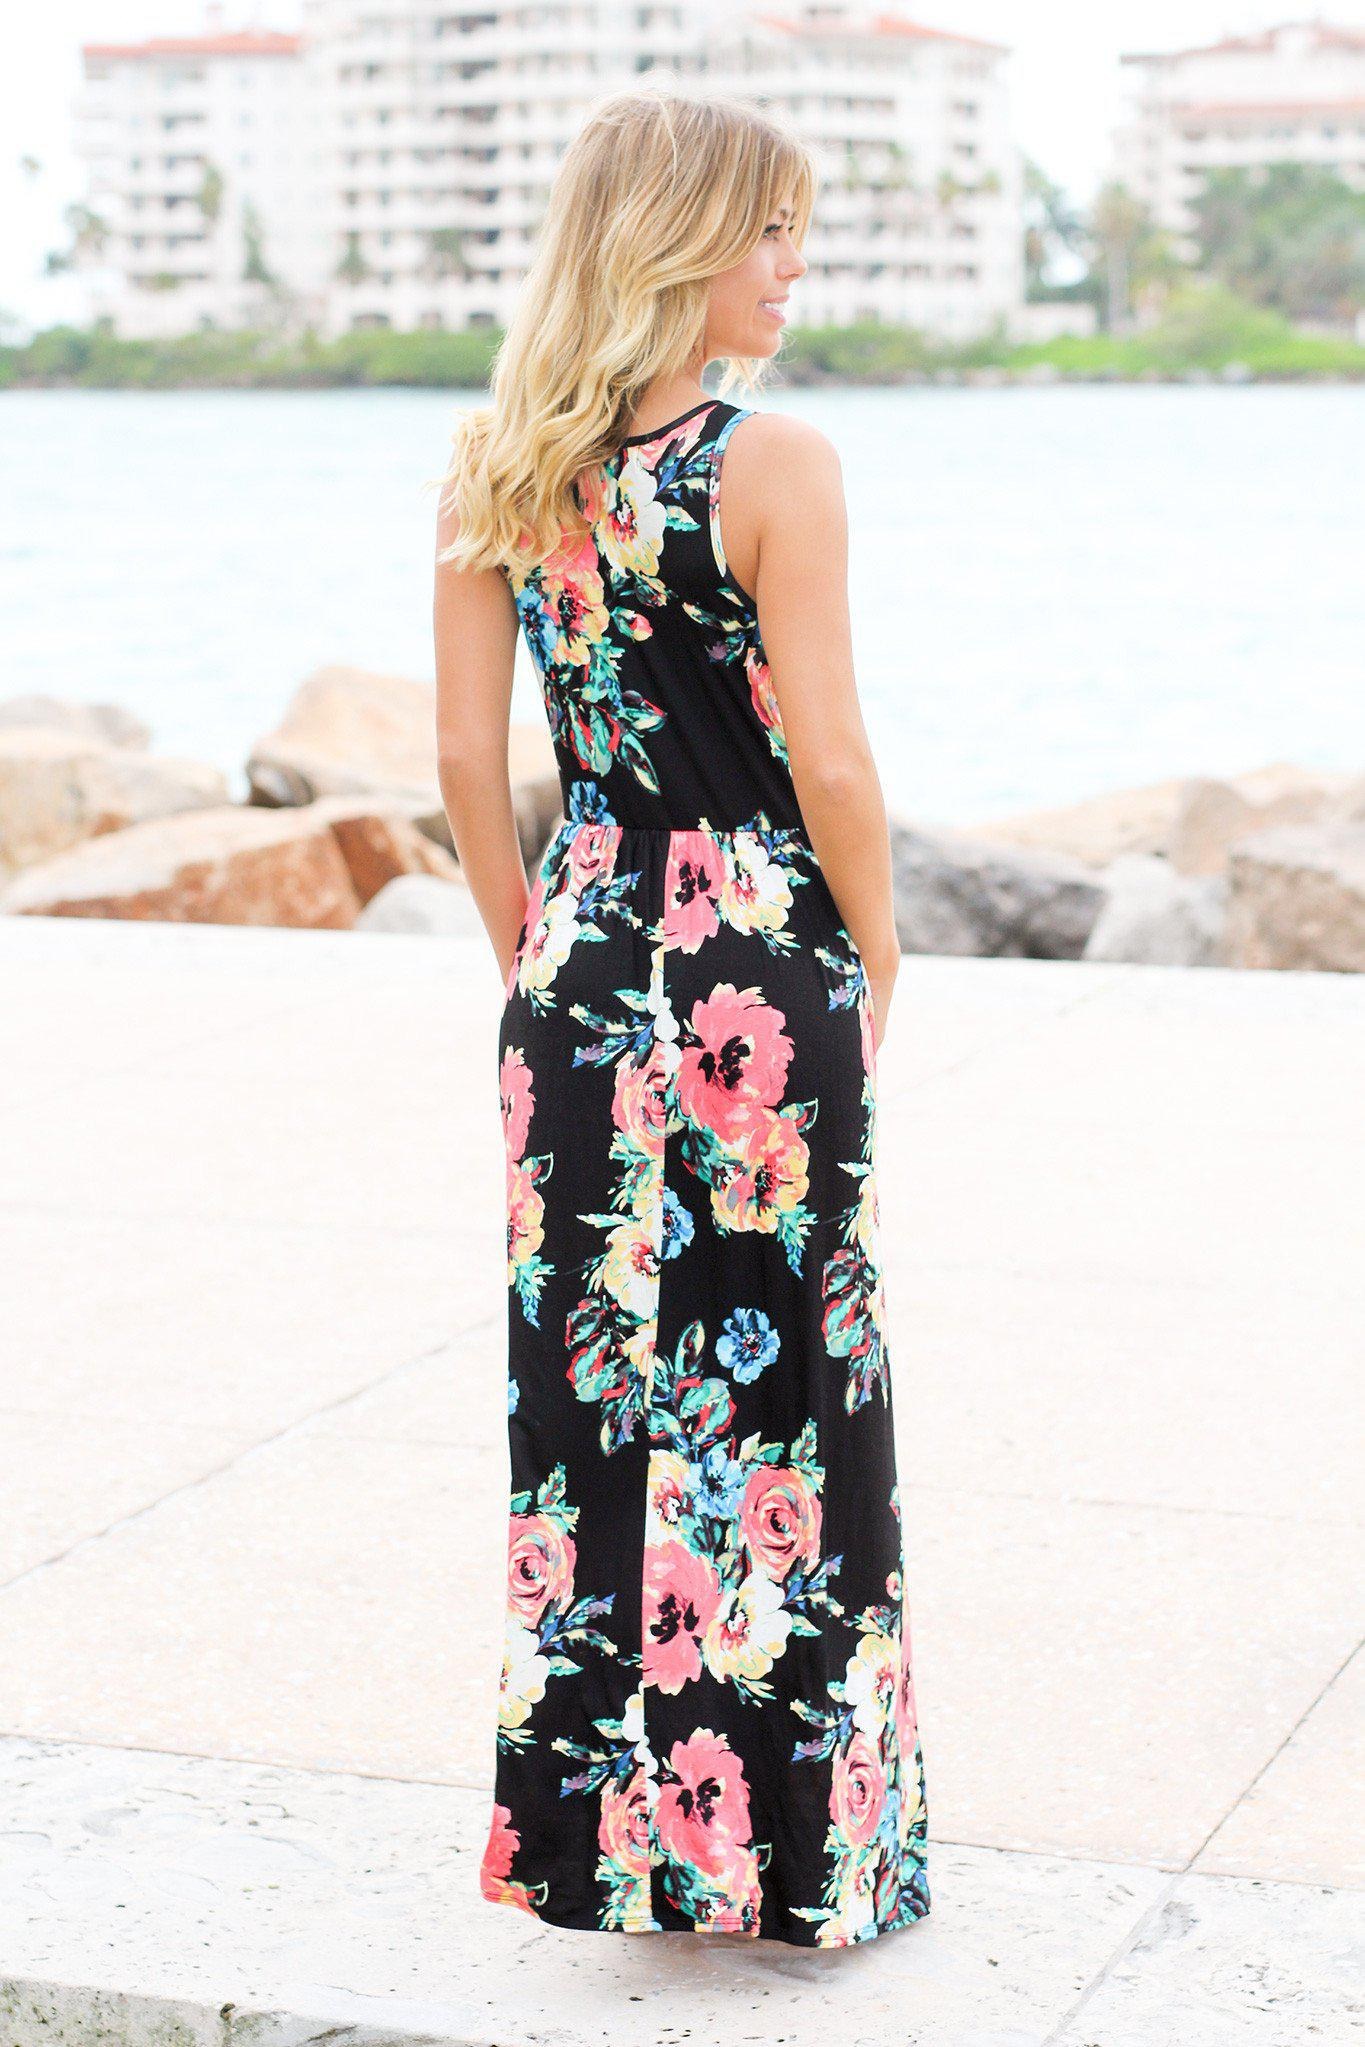 Black Floral Sleeveless Maxi Dress